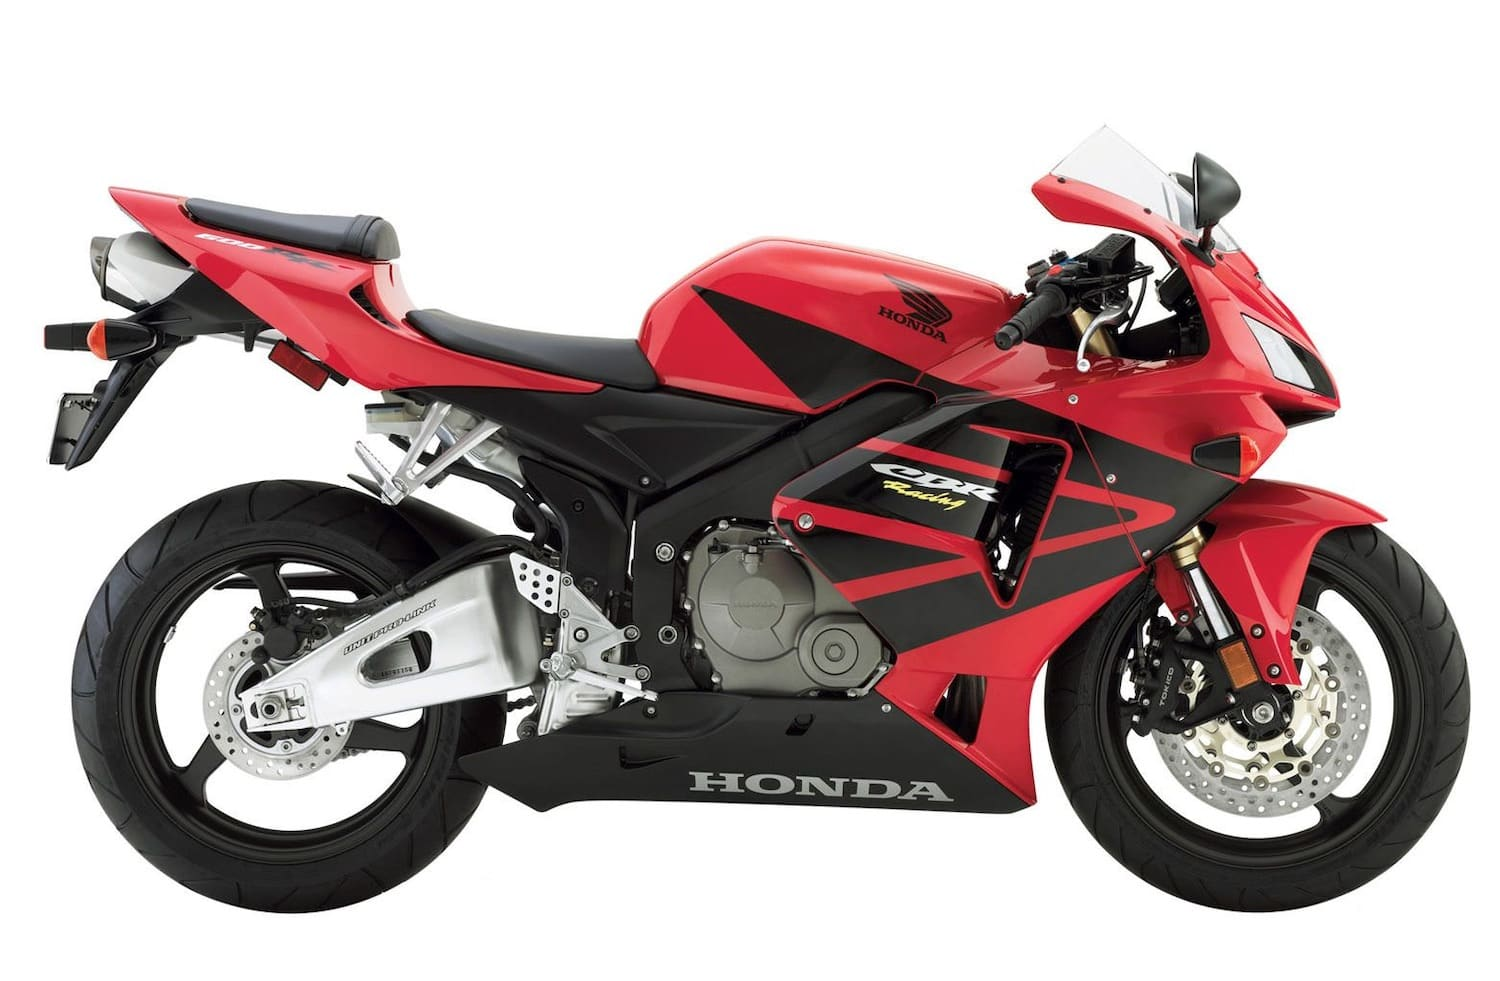 2003 Honda CBR600RR in Red and Black